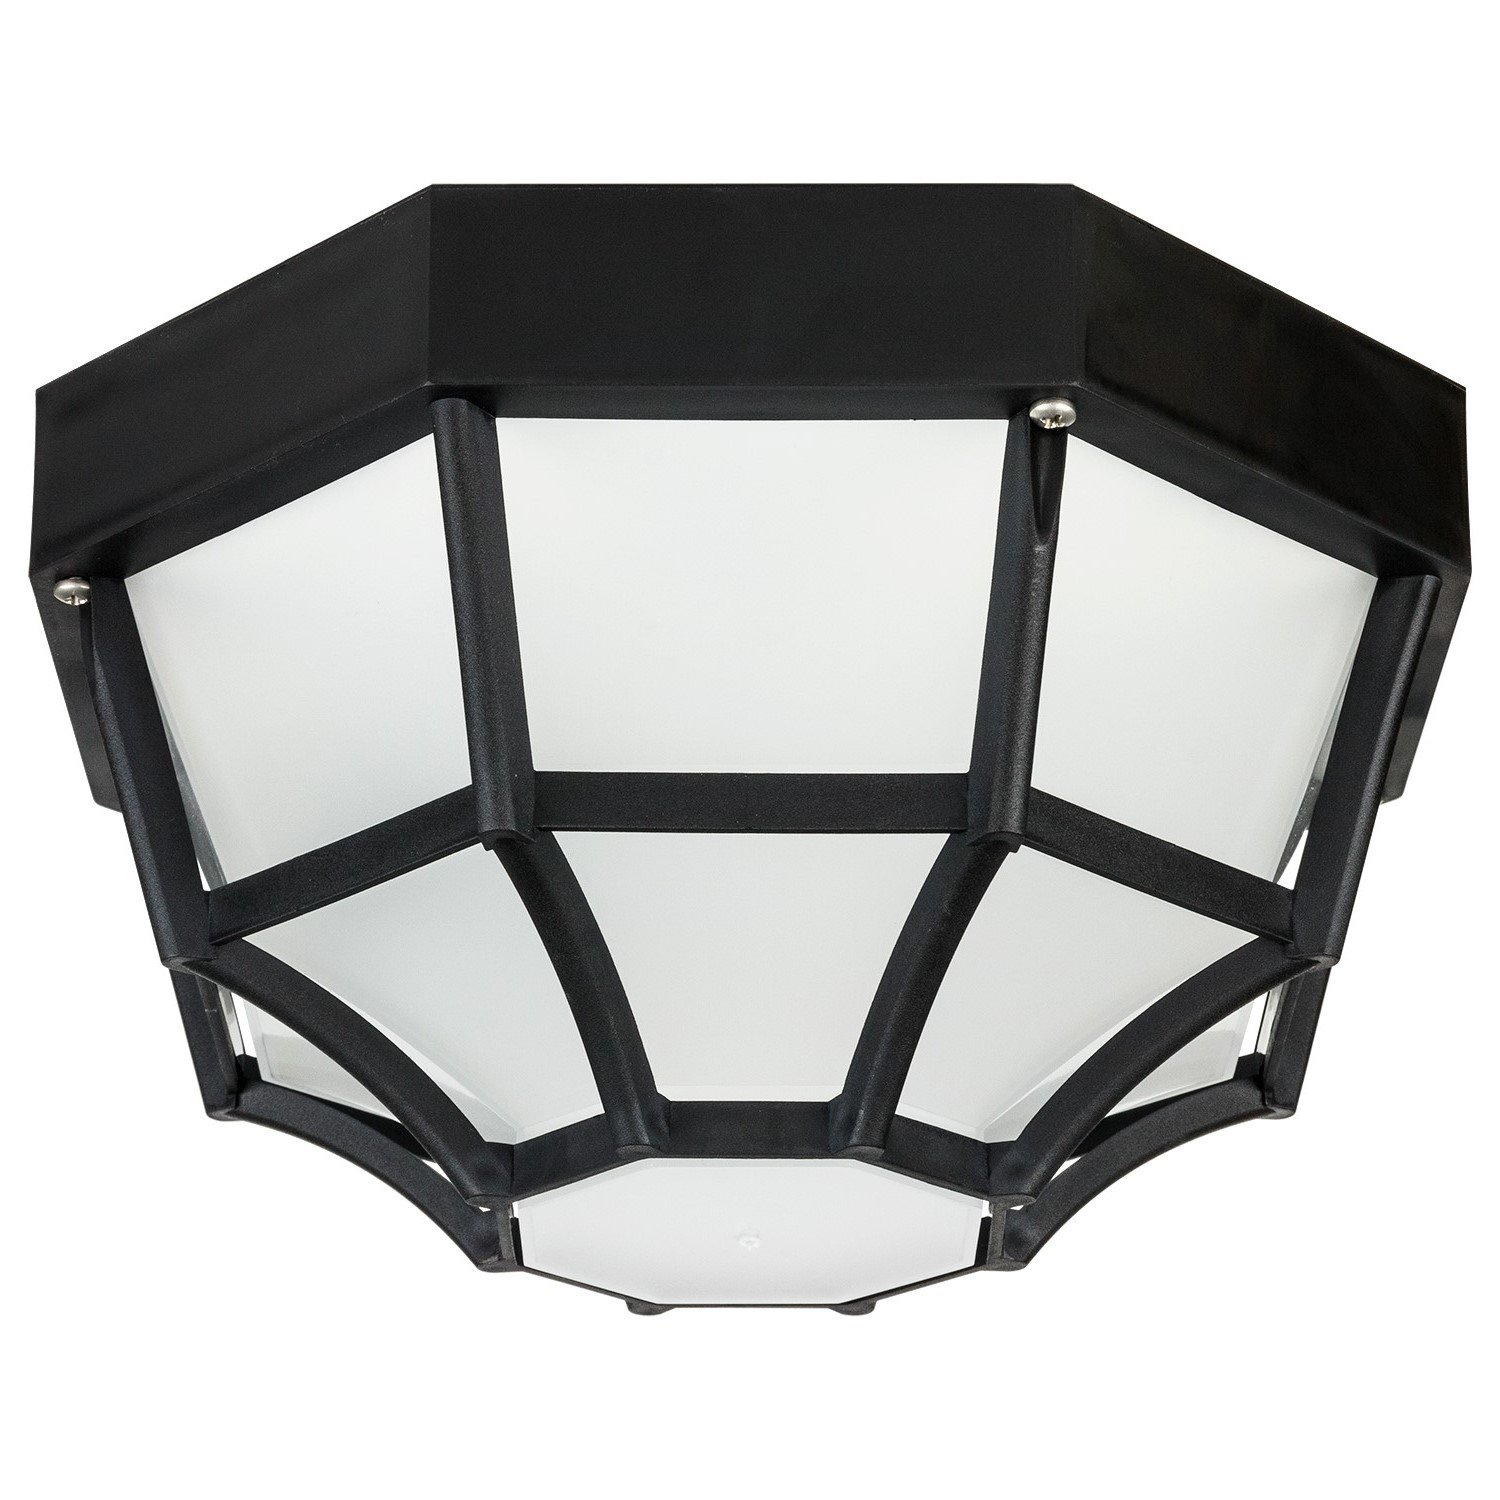 Sunlite 48240-SU DOD/OC/BK/FR/GU24 Decorative Outdoor Energy Saving Octagonal Collection Polycarbonate Fixture, Black Finish, Frosted Lens by Sunlite